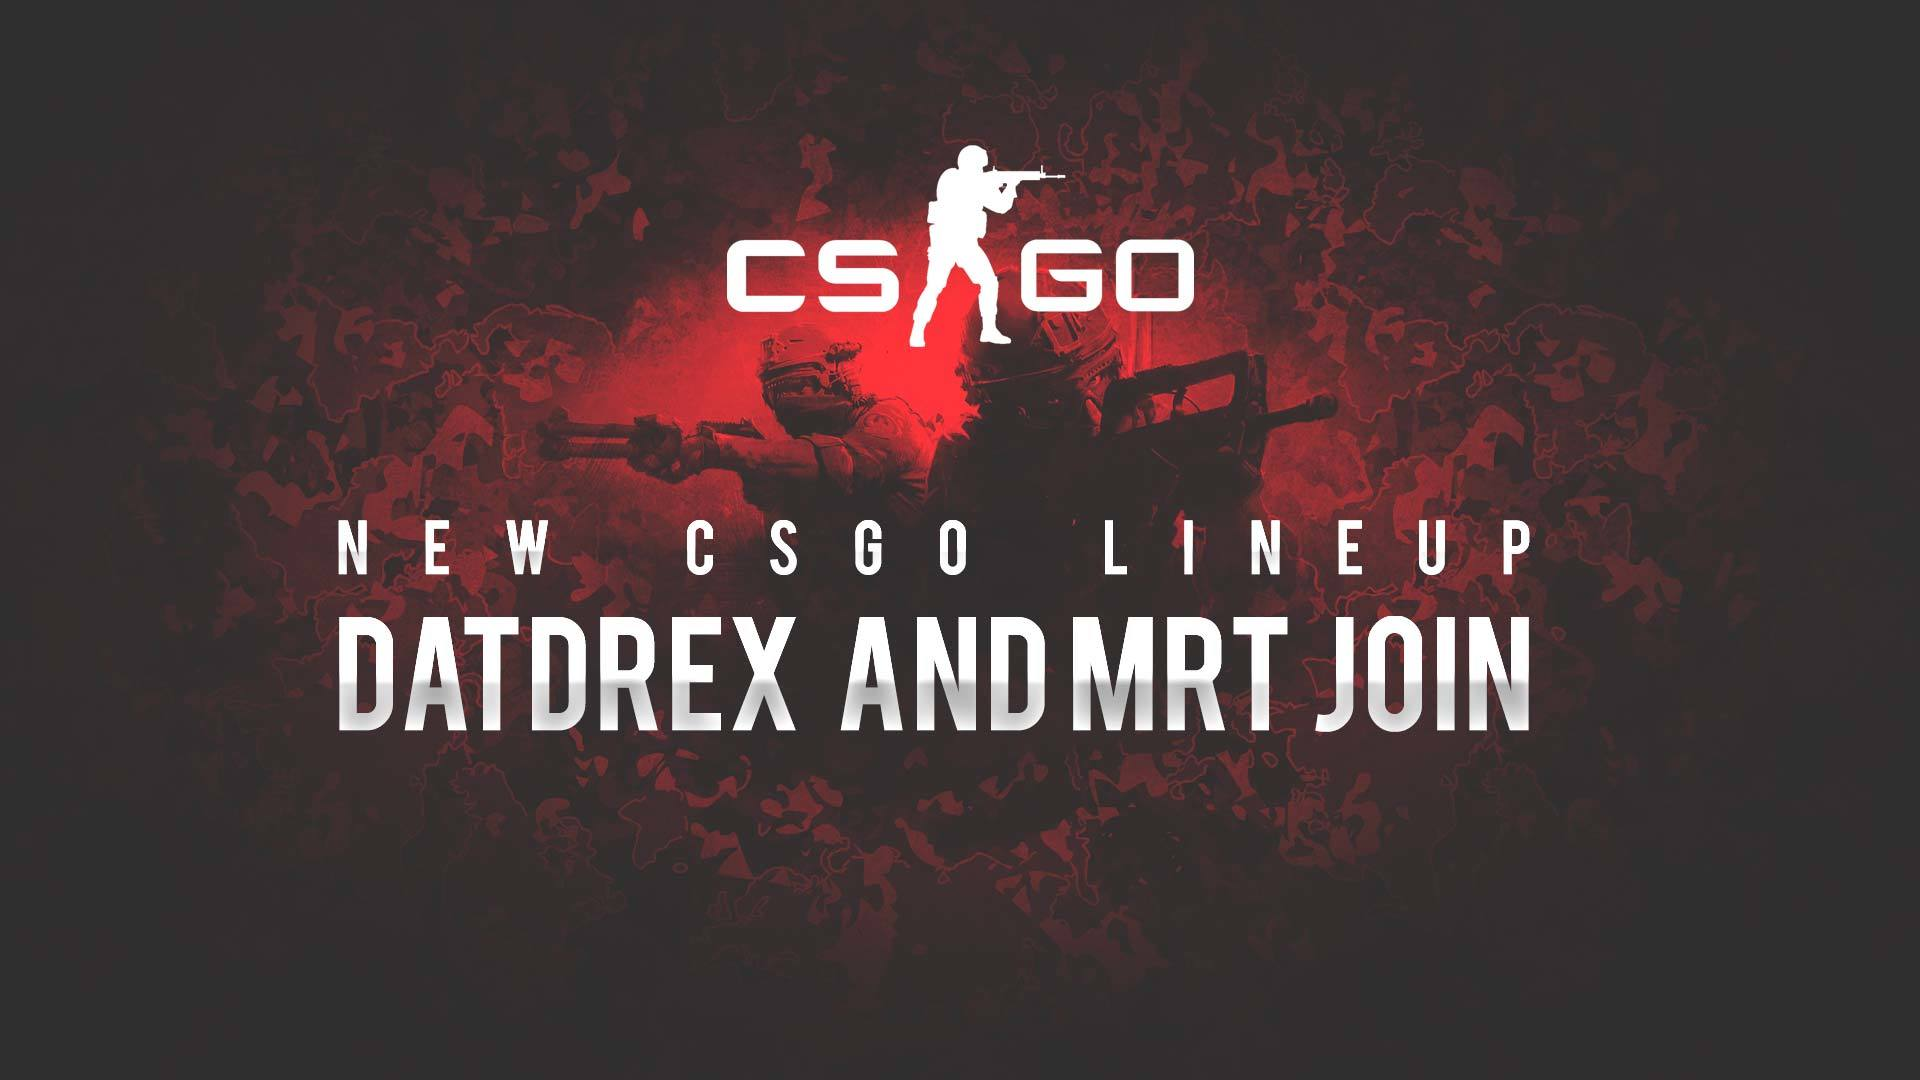 Content page images new csgo lineup 2019 thumbnail